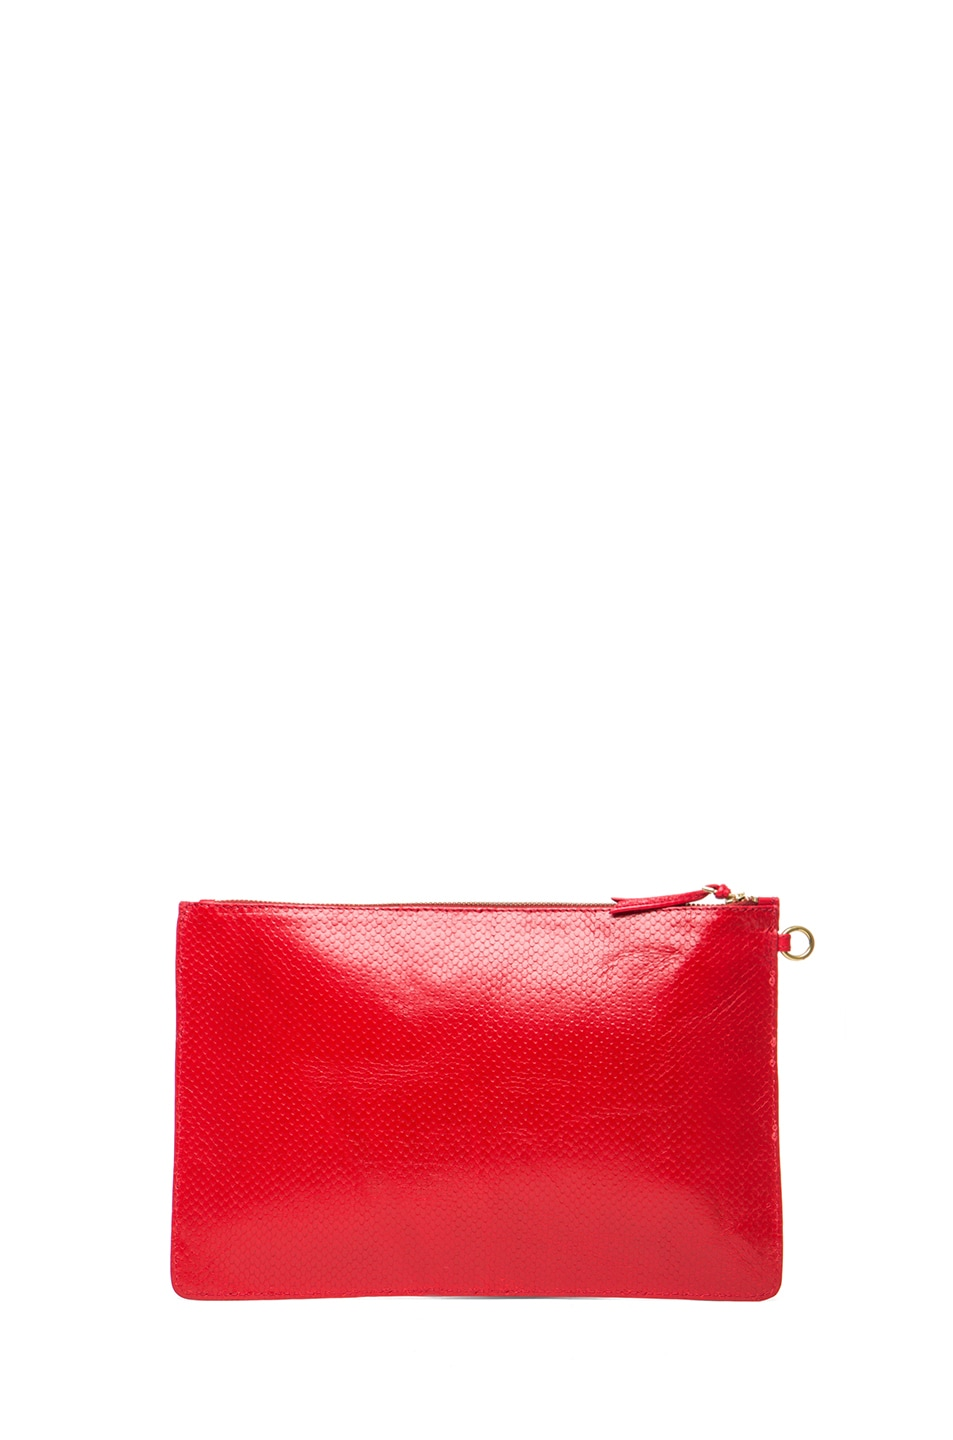 Image 2 of Jerome Dreyfuss Large Popoche Clutch in Red